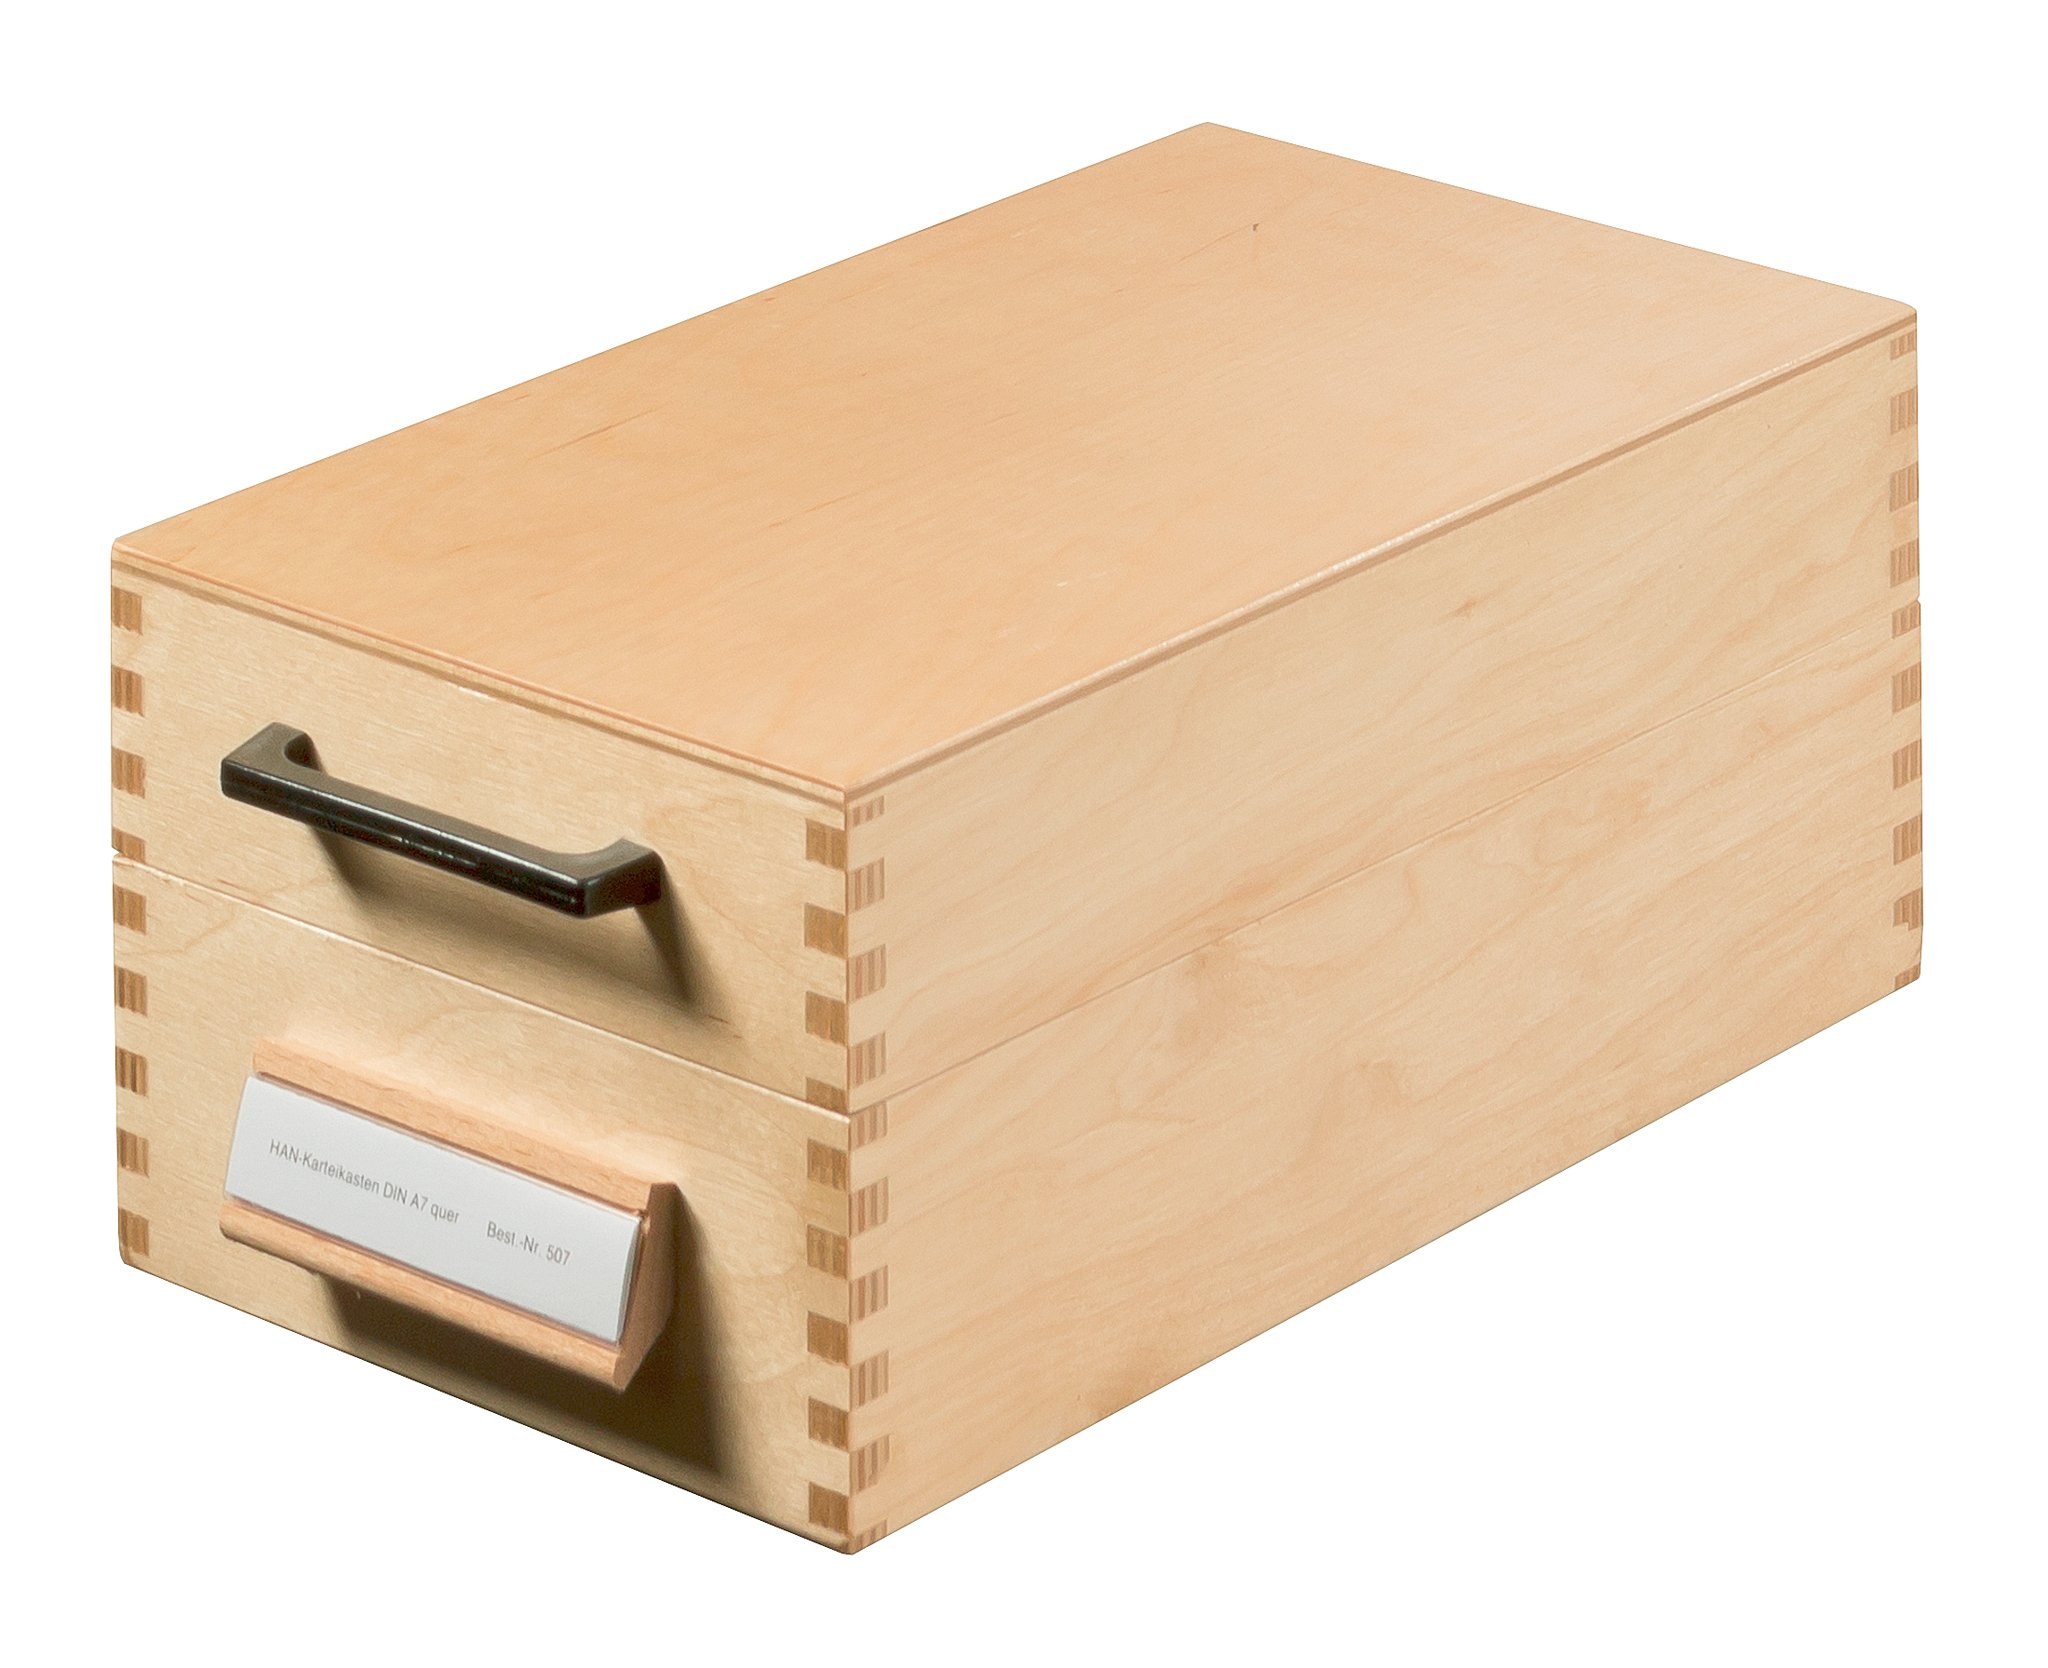 HAN 507, Wooden Card Filing Box A7 Landscape, for 900 Cards, Metal Base/Support Plate, Natural Wood by HAN